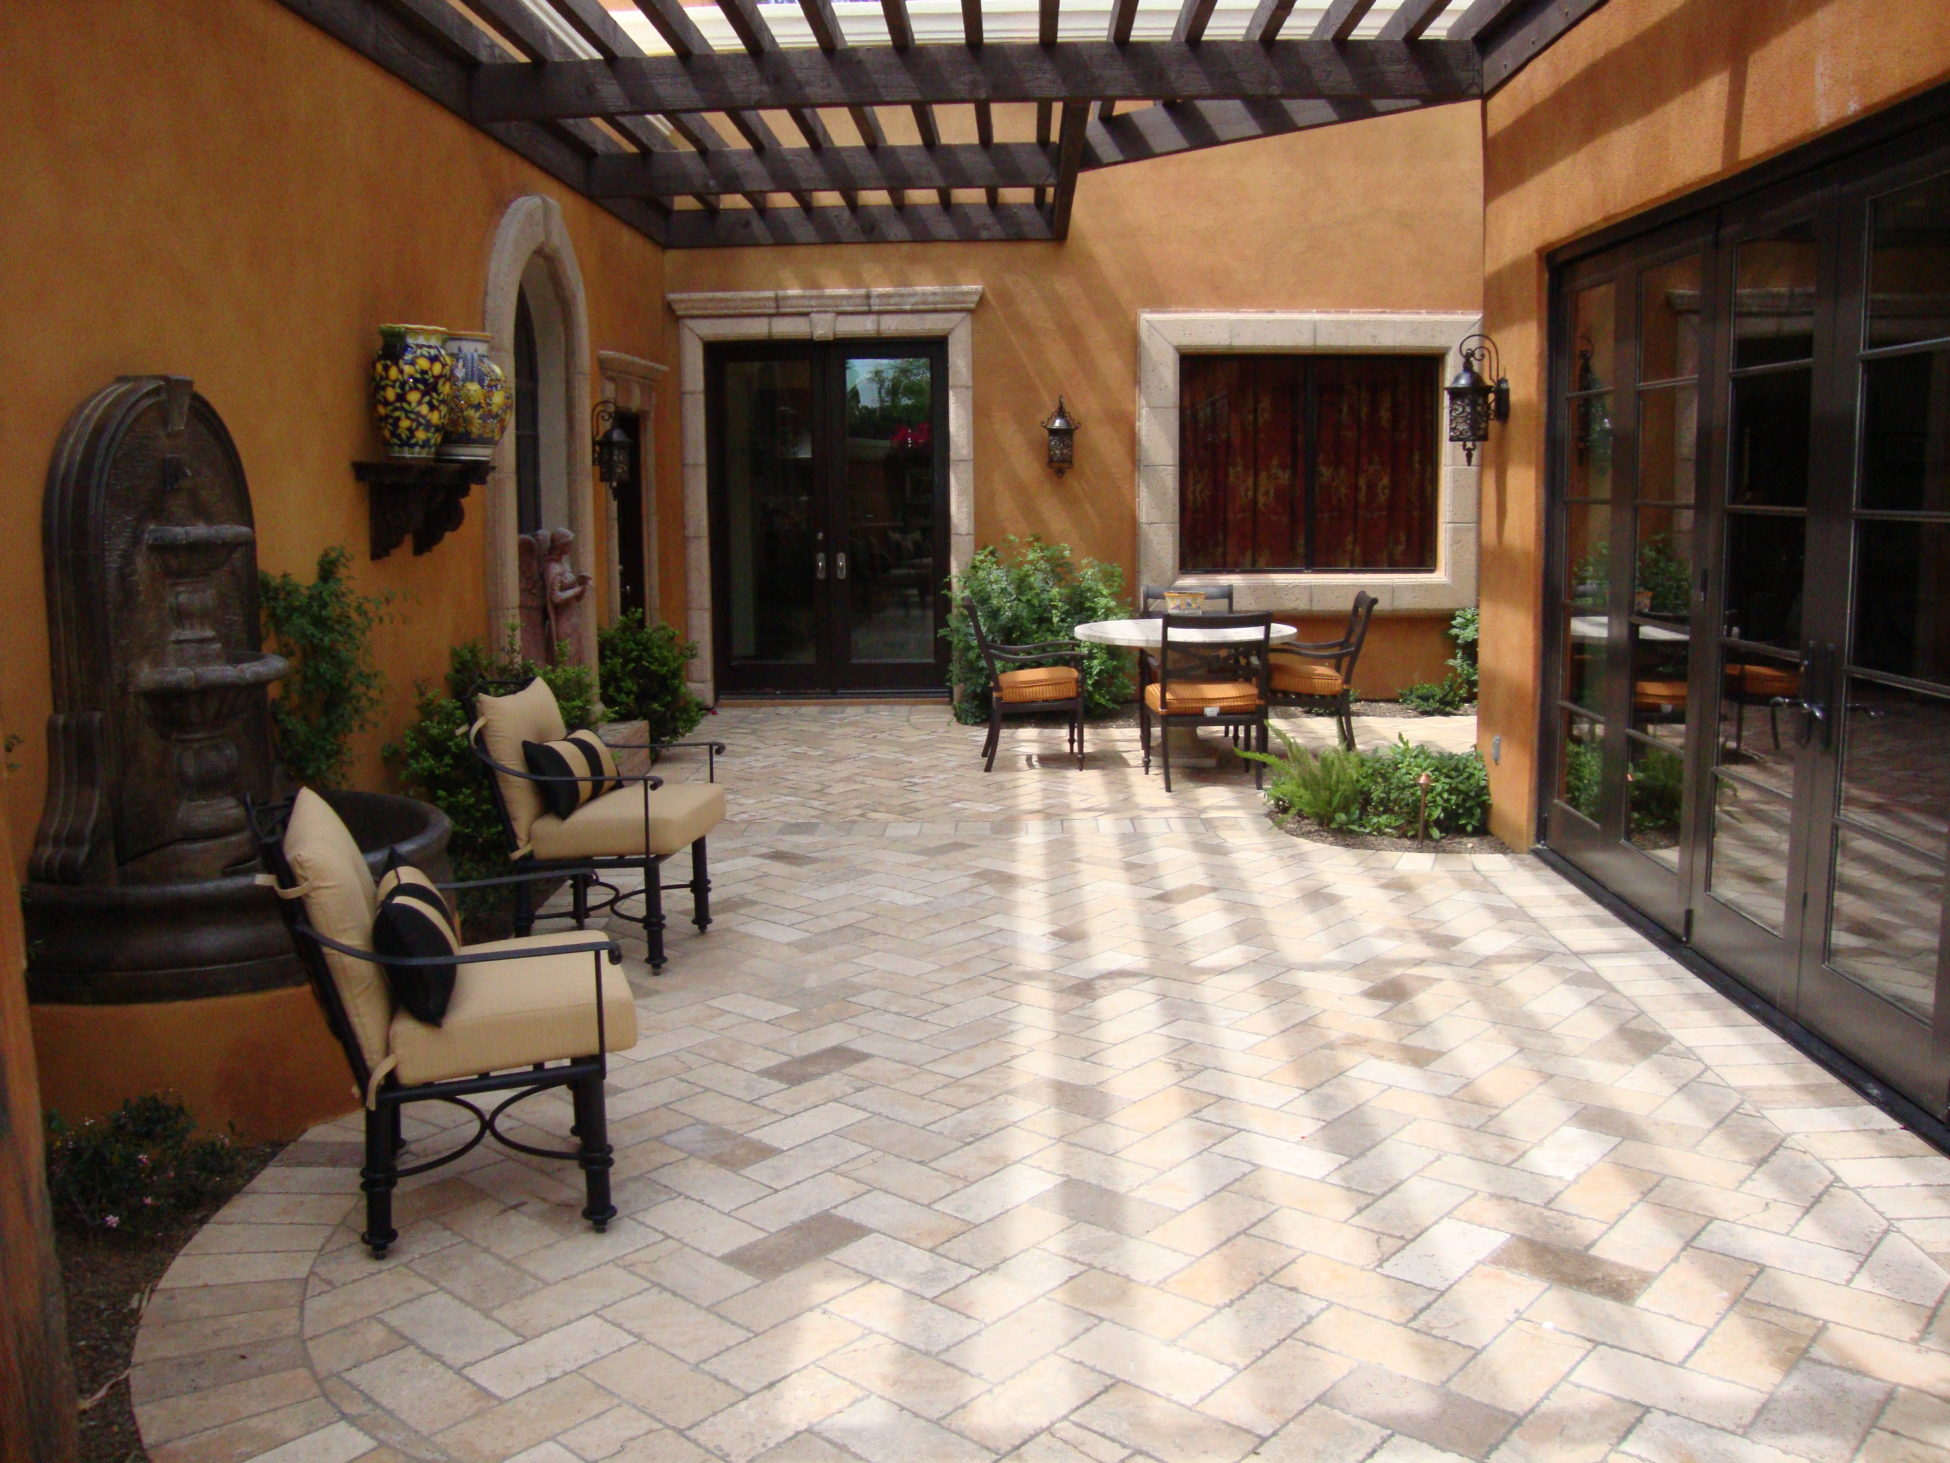 Paver Designs and Paver Ideas for Your Backyard Patios on Yard Paver Ideas  id=51126